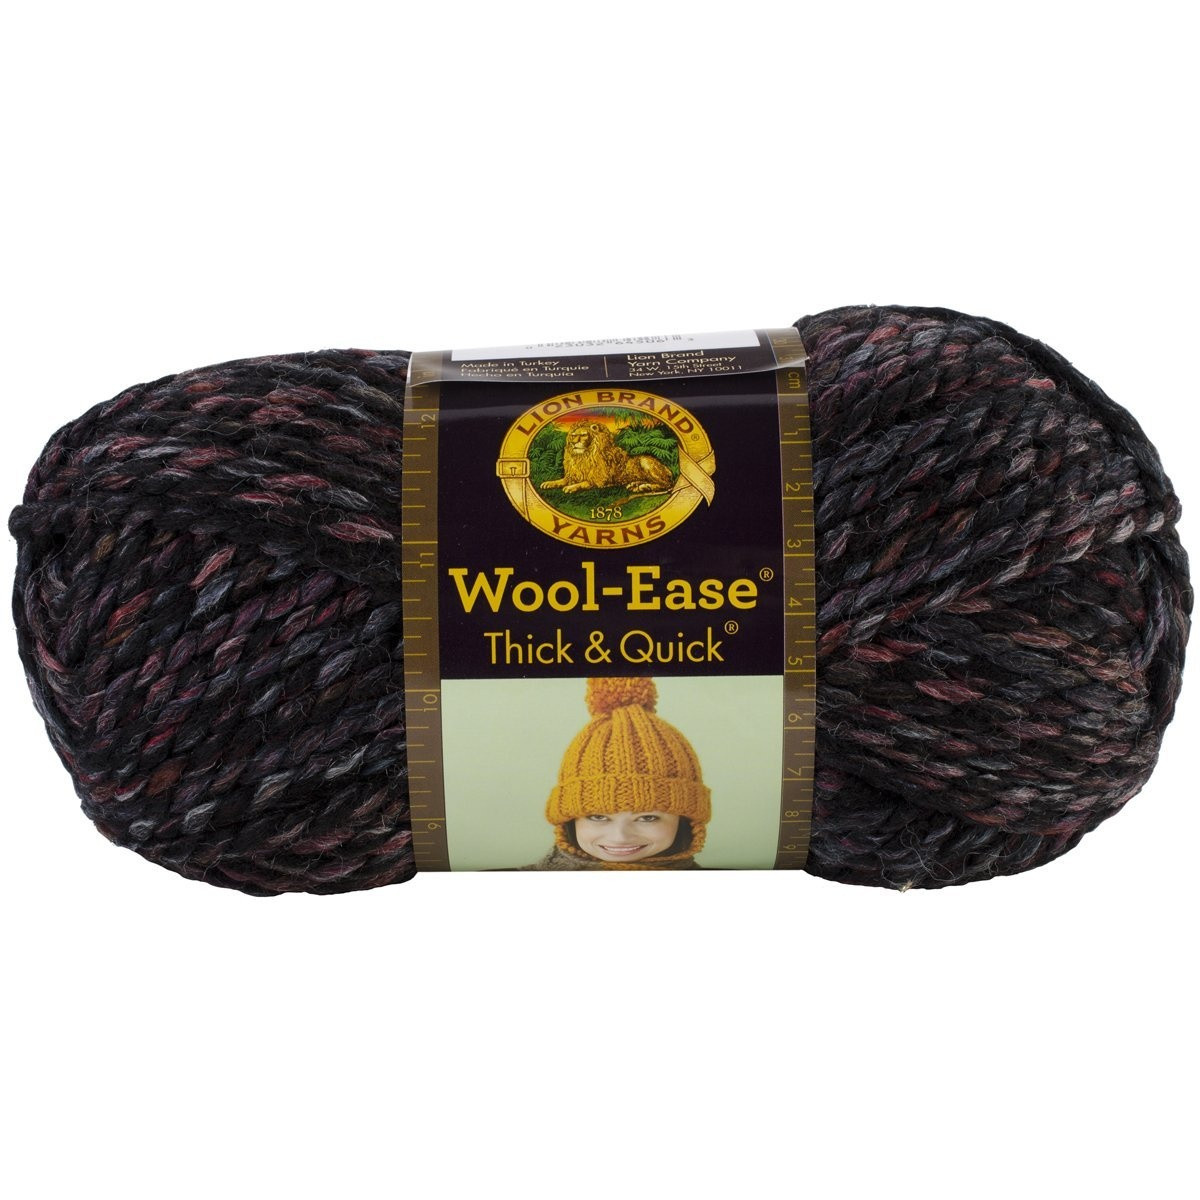 Lion Brand Yarn Thick and Quick Lovely Lion Brand Yarn 640 136f Wool Ease Thick and Quick Yarn Of Luxury 44 Models Lion Brand Yarn Thick and Quick